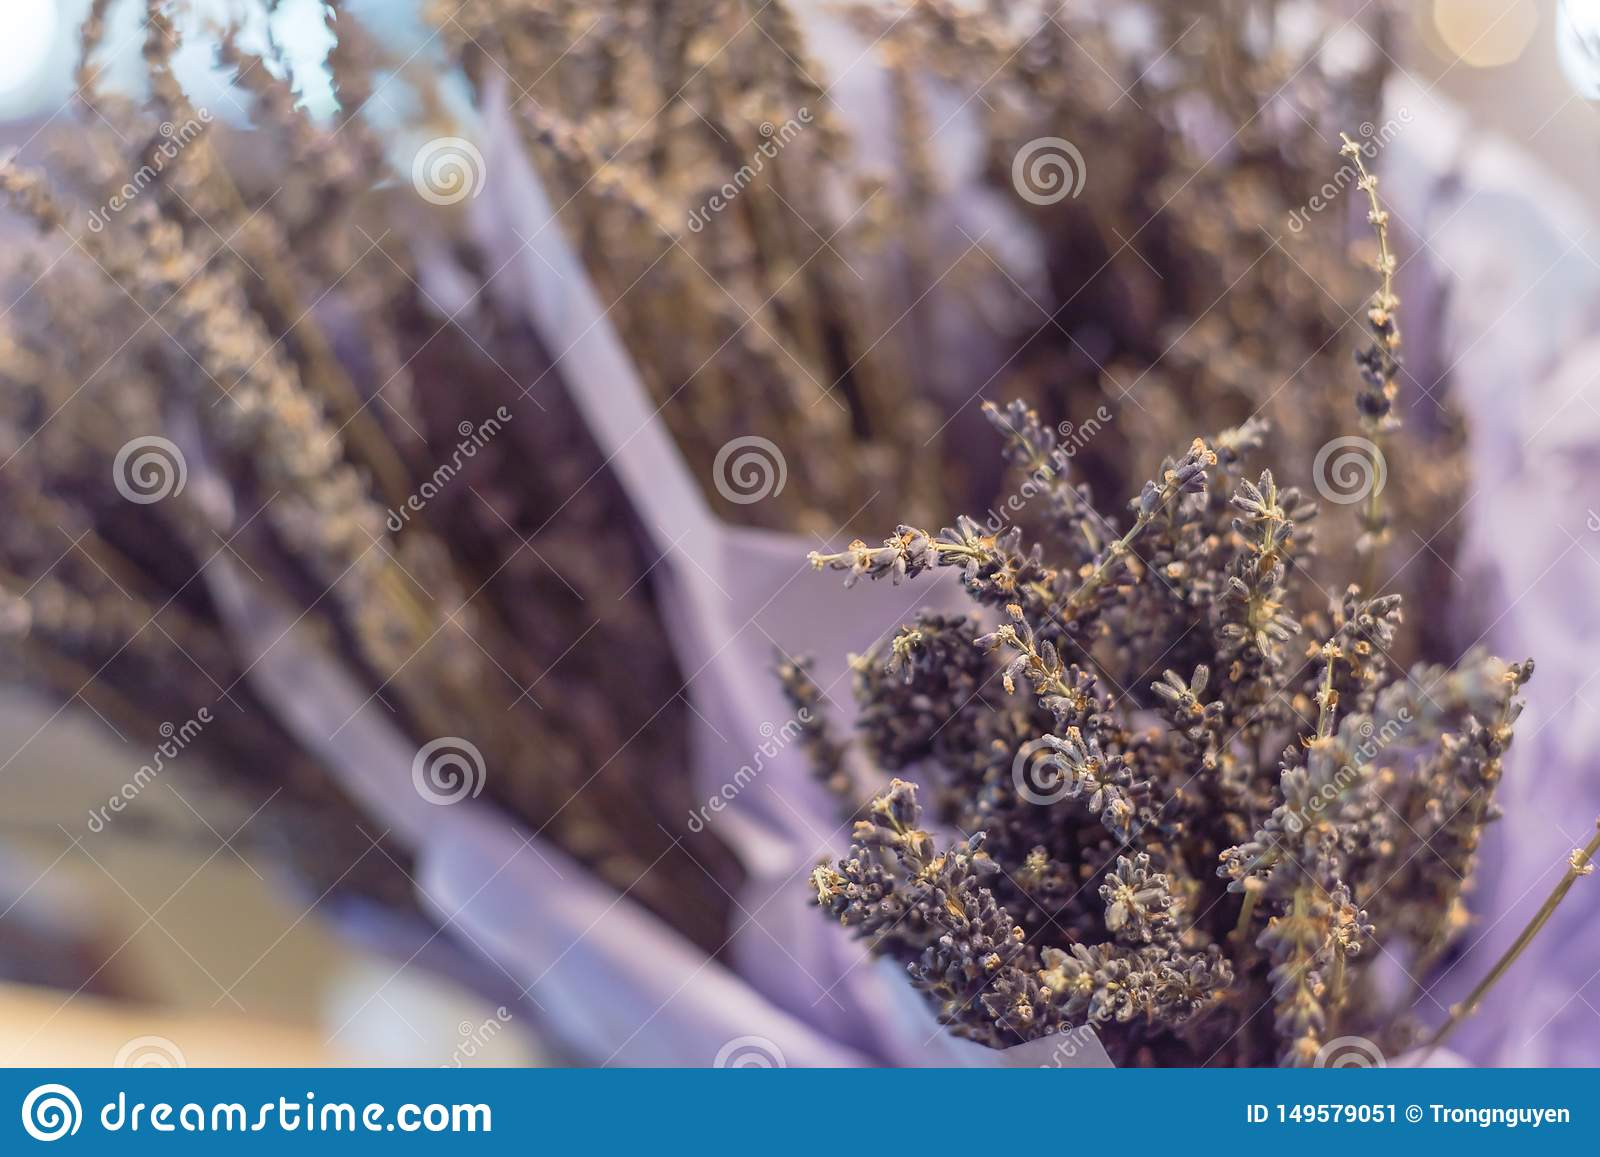 Lavender Bouquet In Paper Wrap At Local Shop In Texas, USA